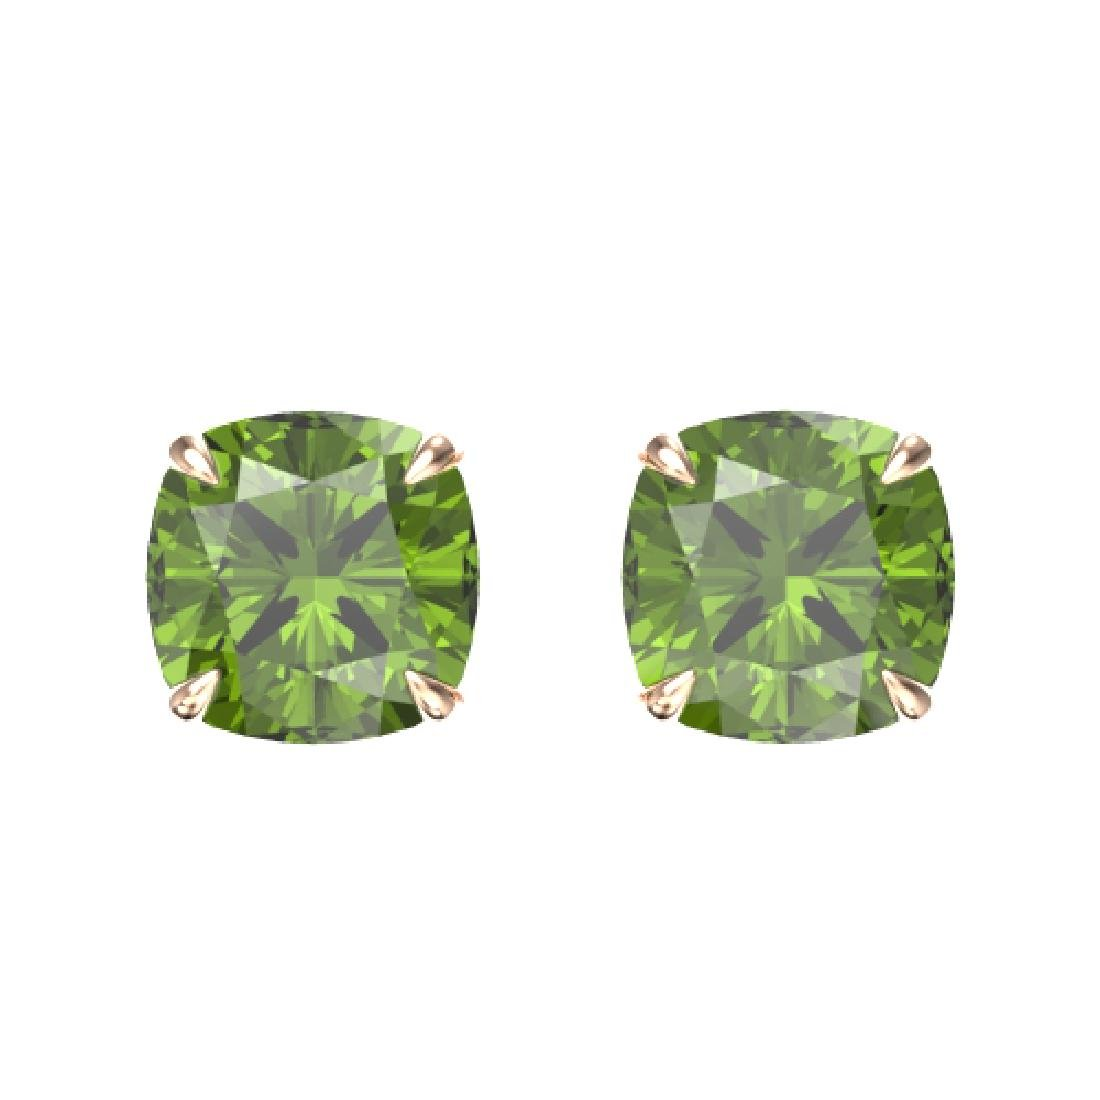 4 CTW Cushion Cut Green Tourmaline Designer Stud